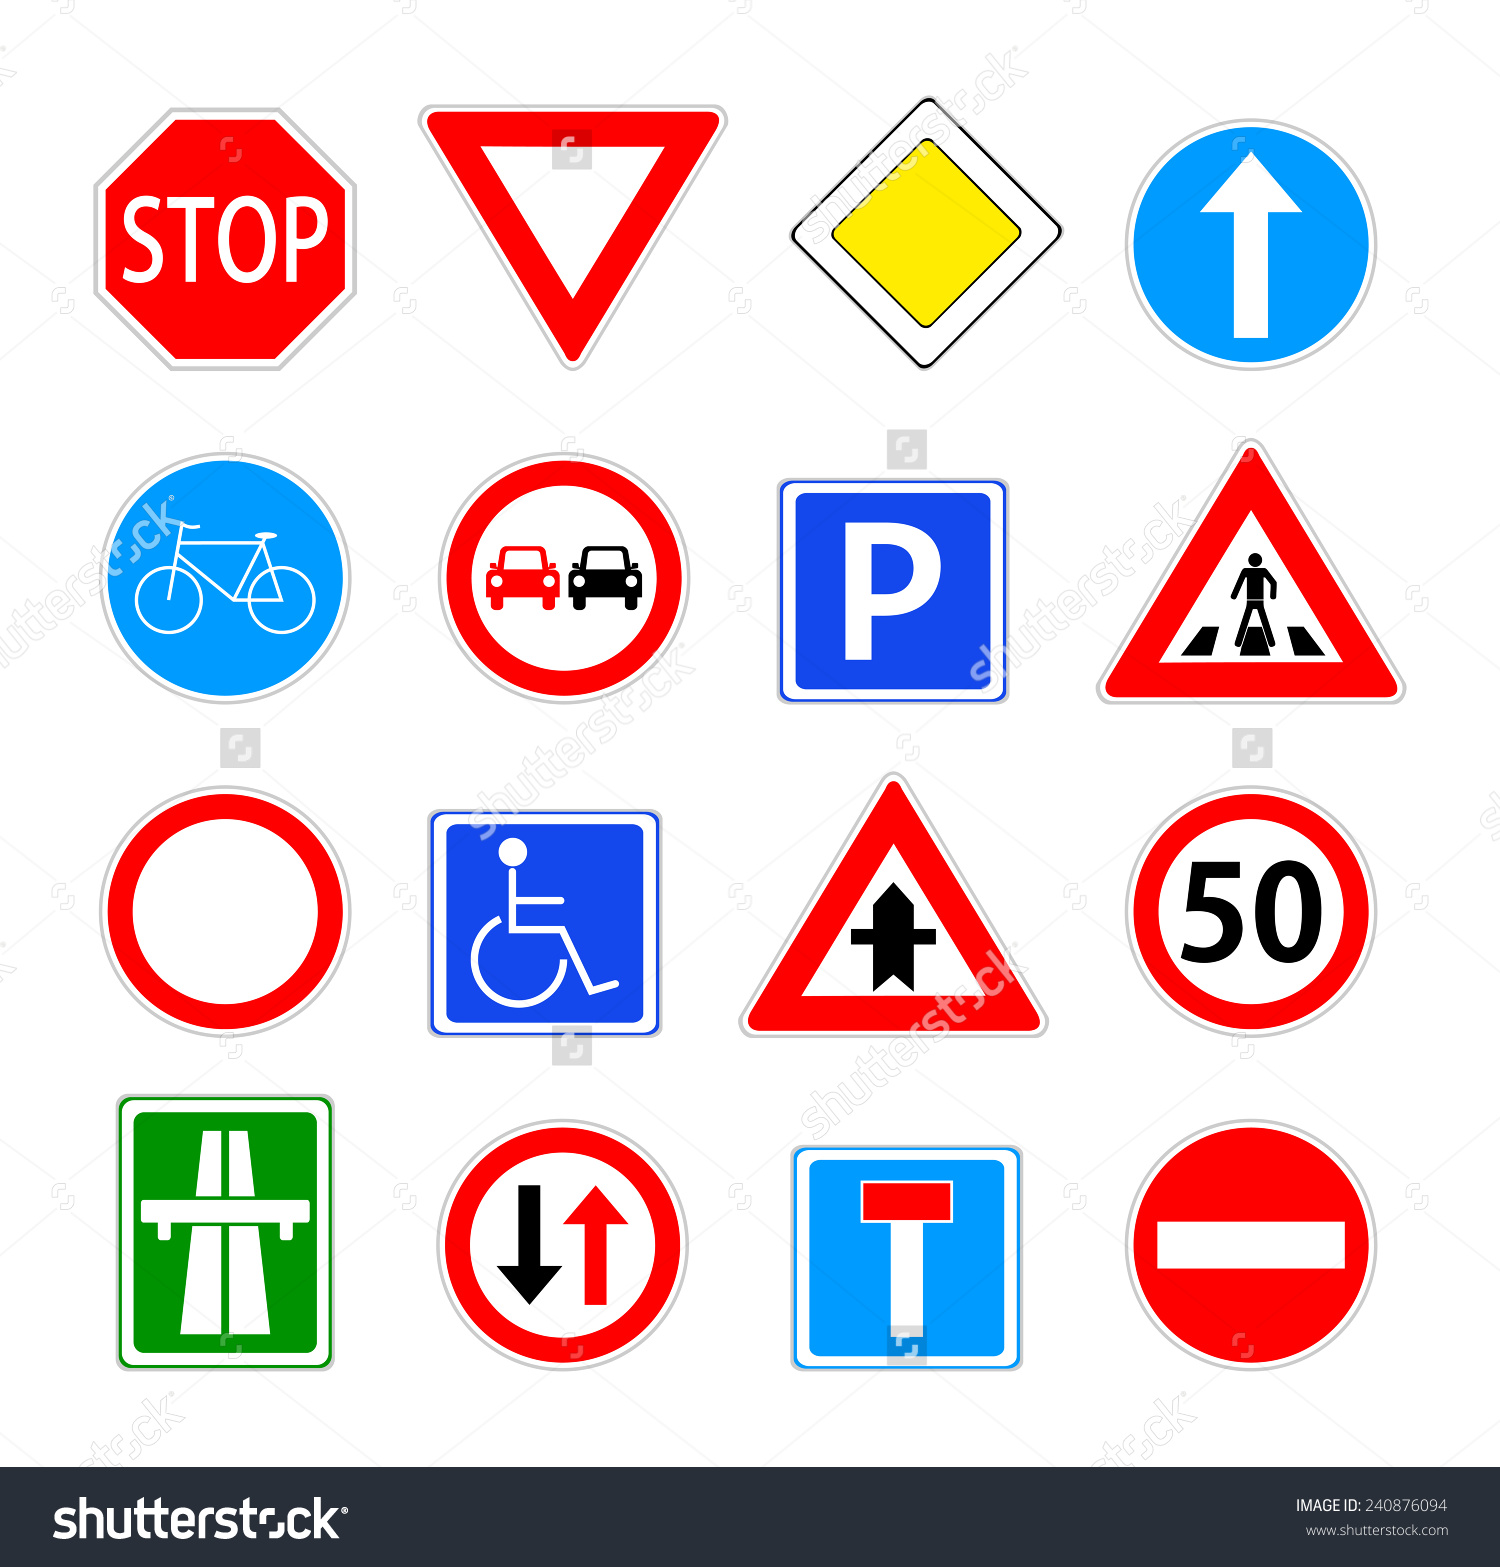 Traffic Sign Collection Red Blue Green Stock Vector 240876094.